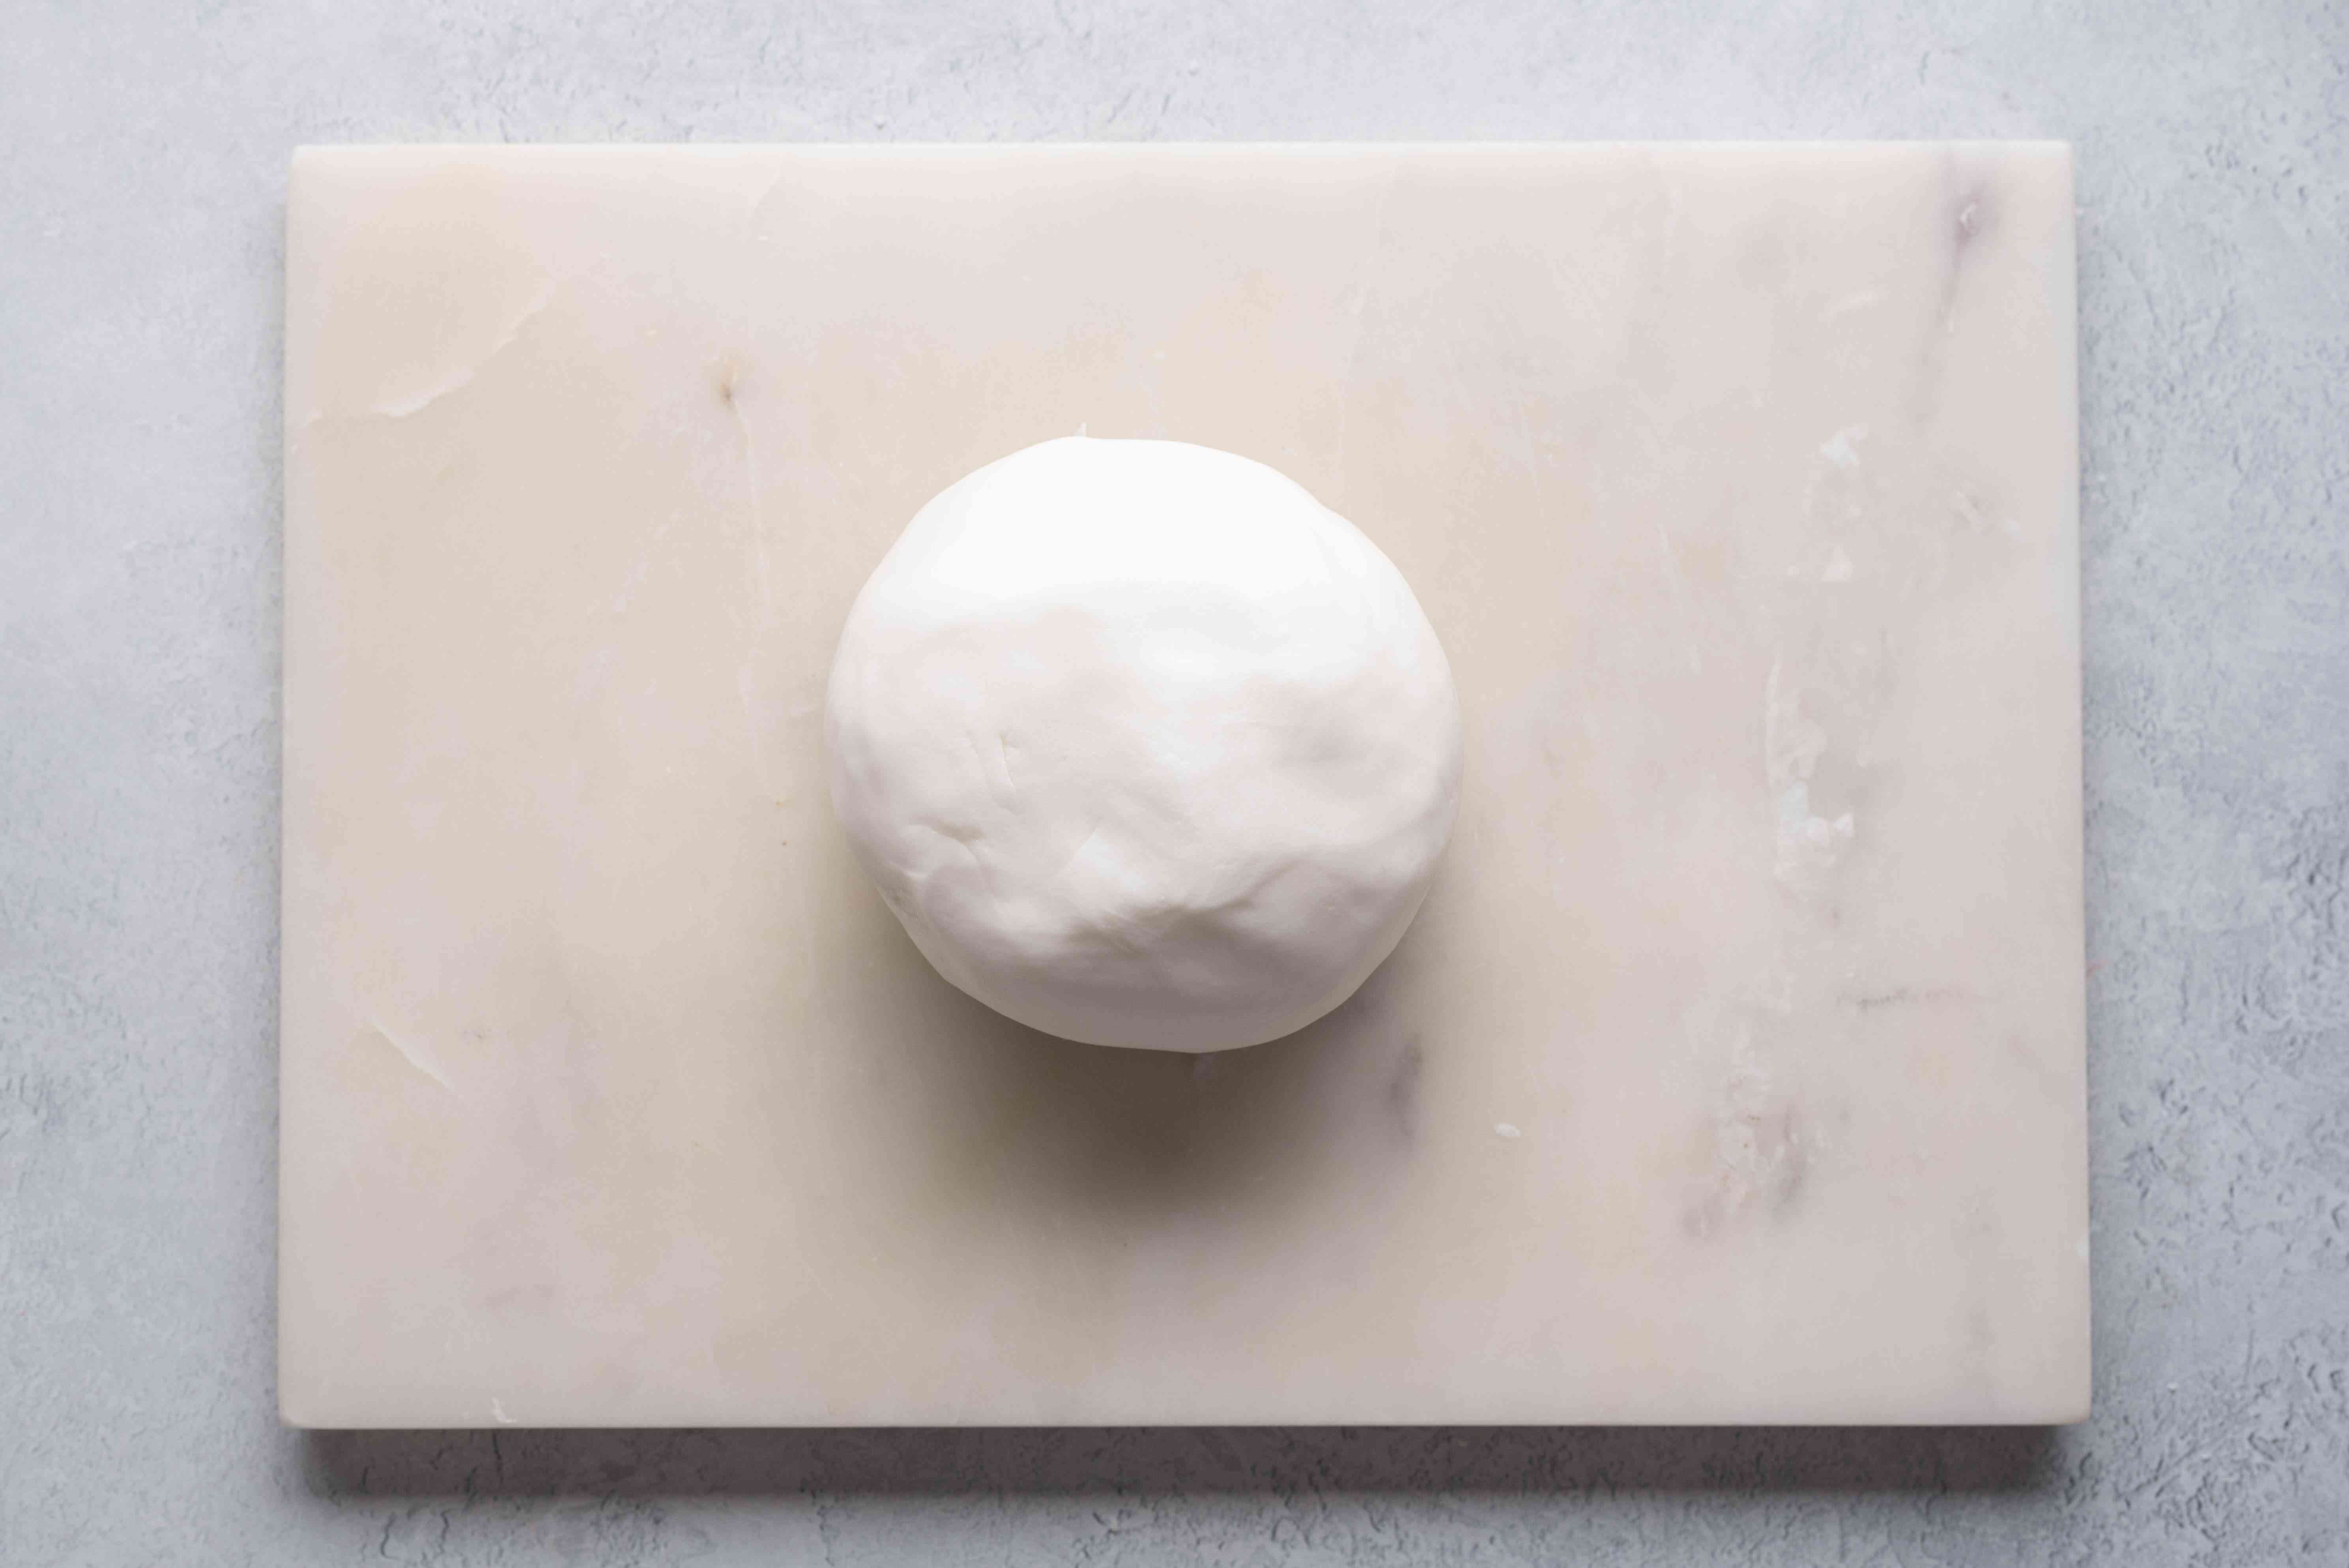 fondant on surface in ball